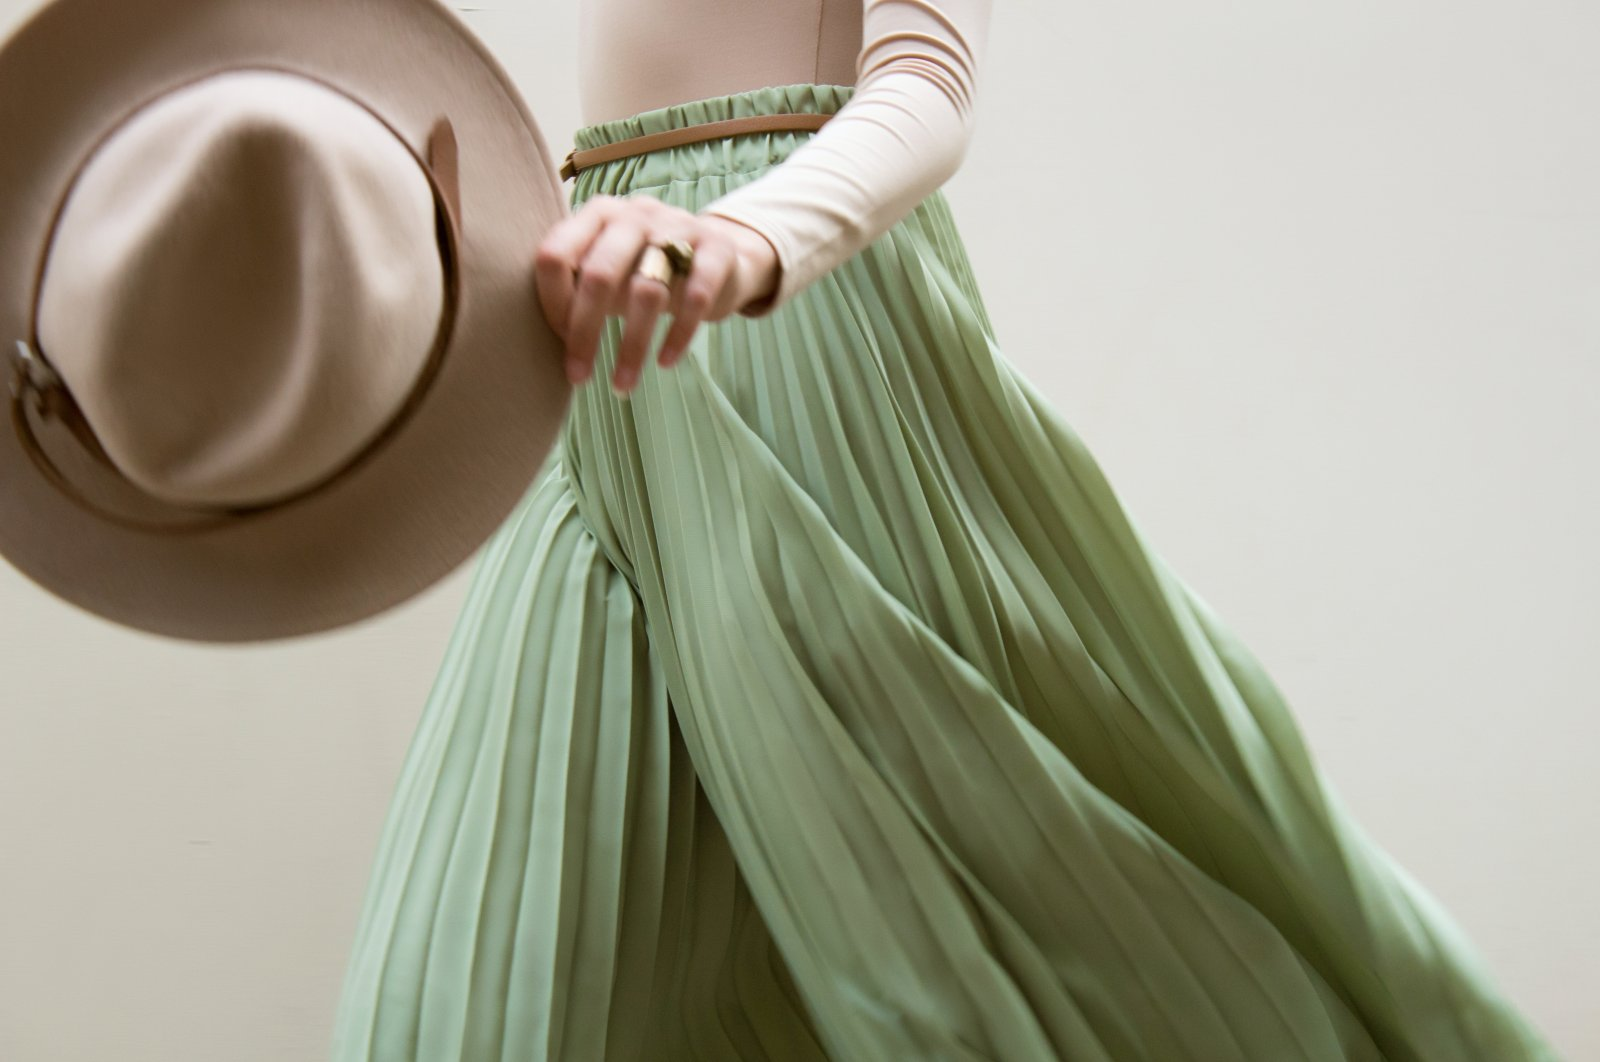 One way to wear a pleated skirt is in combination with an oversized top piece. (Shutterstock Photo)